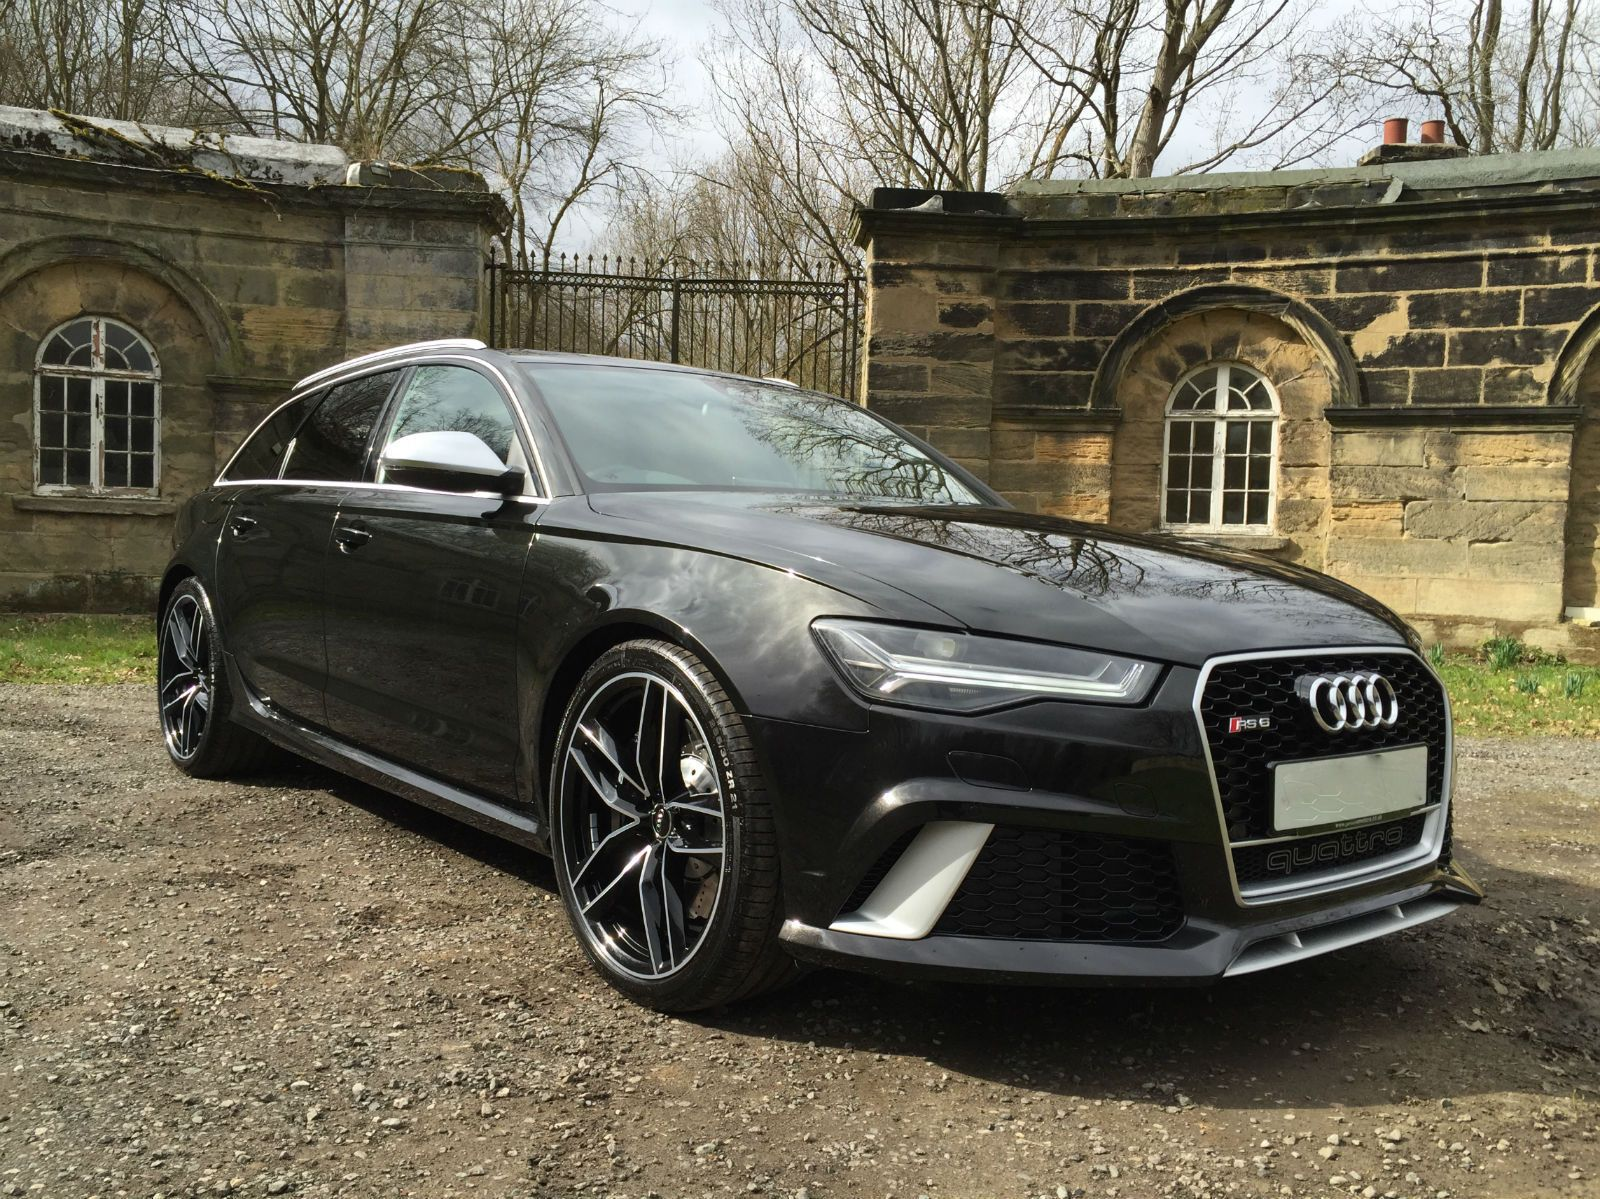 audi rs6 avant 4 0tfsi 552bhp tiptronic 2016my quattro the cars the star audi rs6 audi. Black Bedroom Furniture Sets. Home Design Ideas